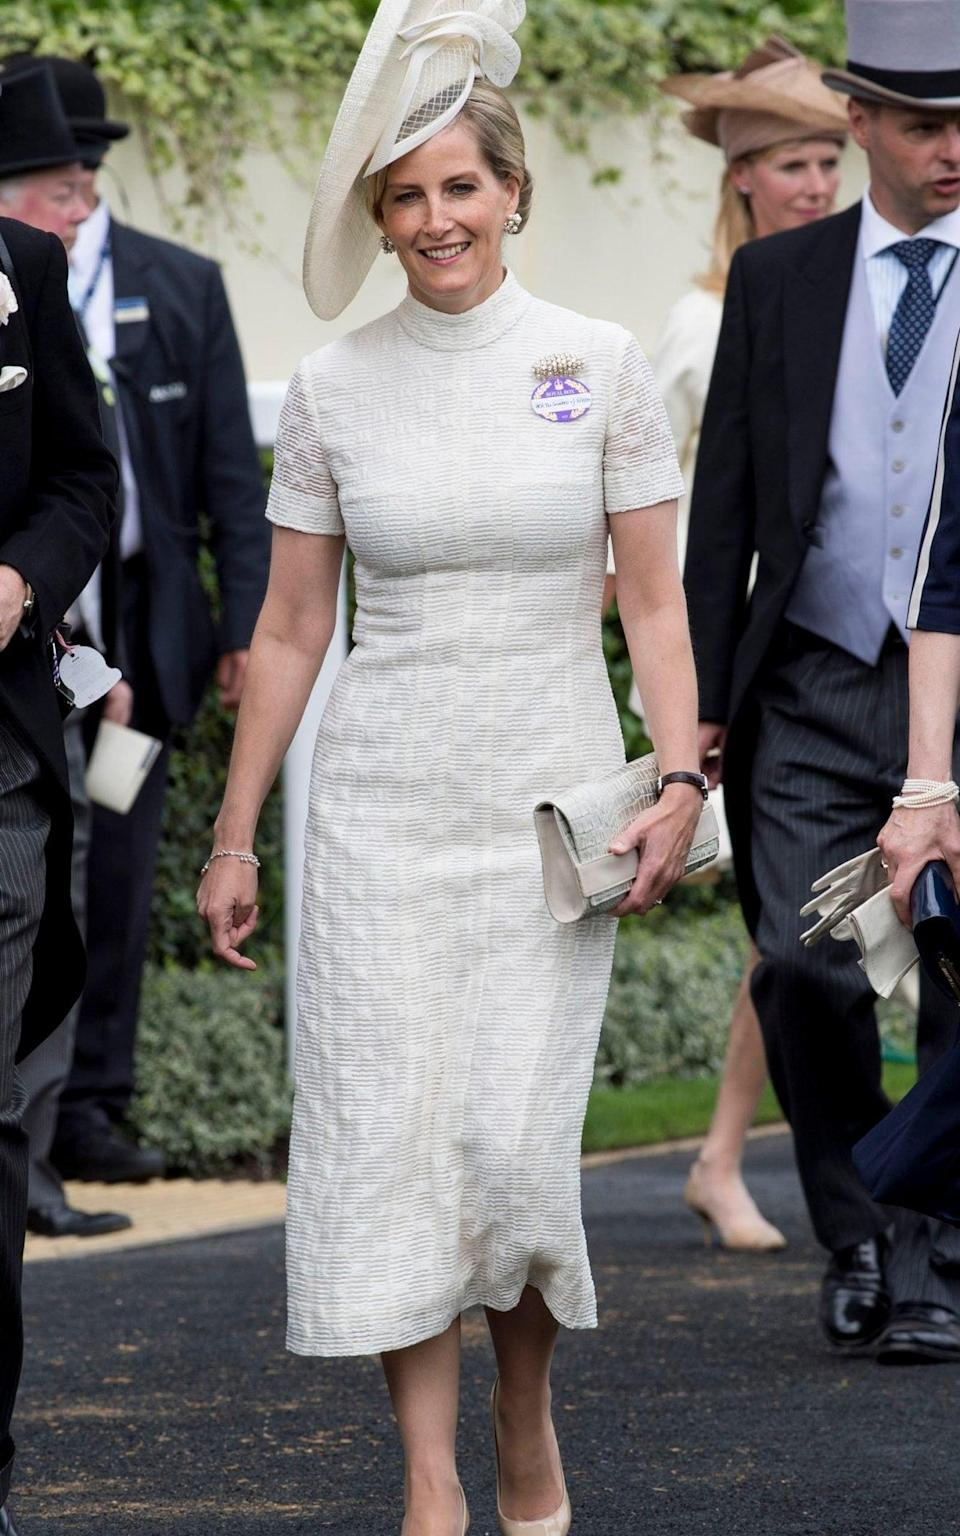 Sophie, Countess of Wessex on day 1 of Royal Ascot - UK Press